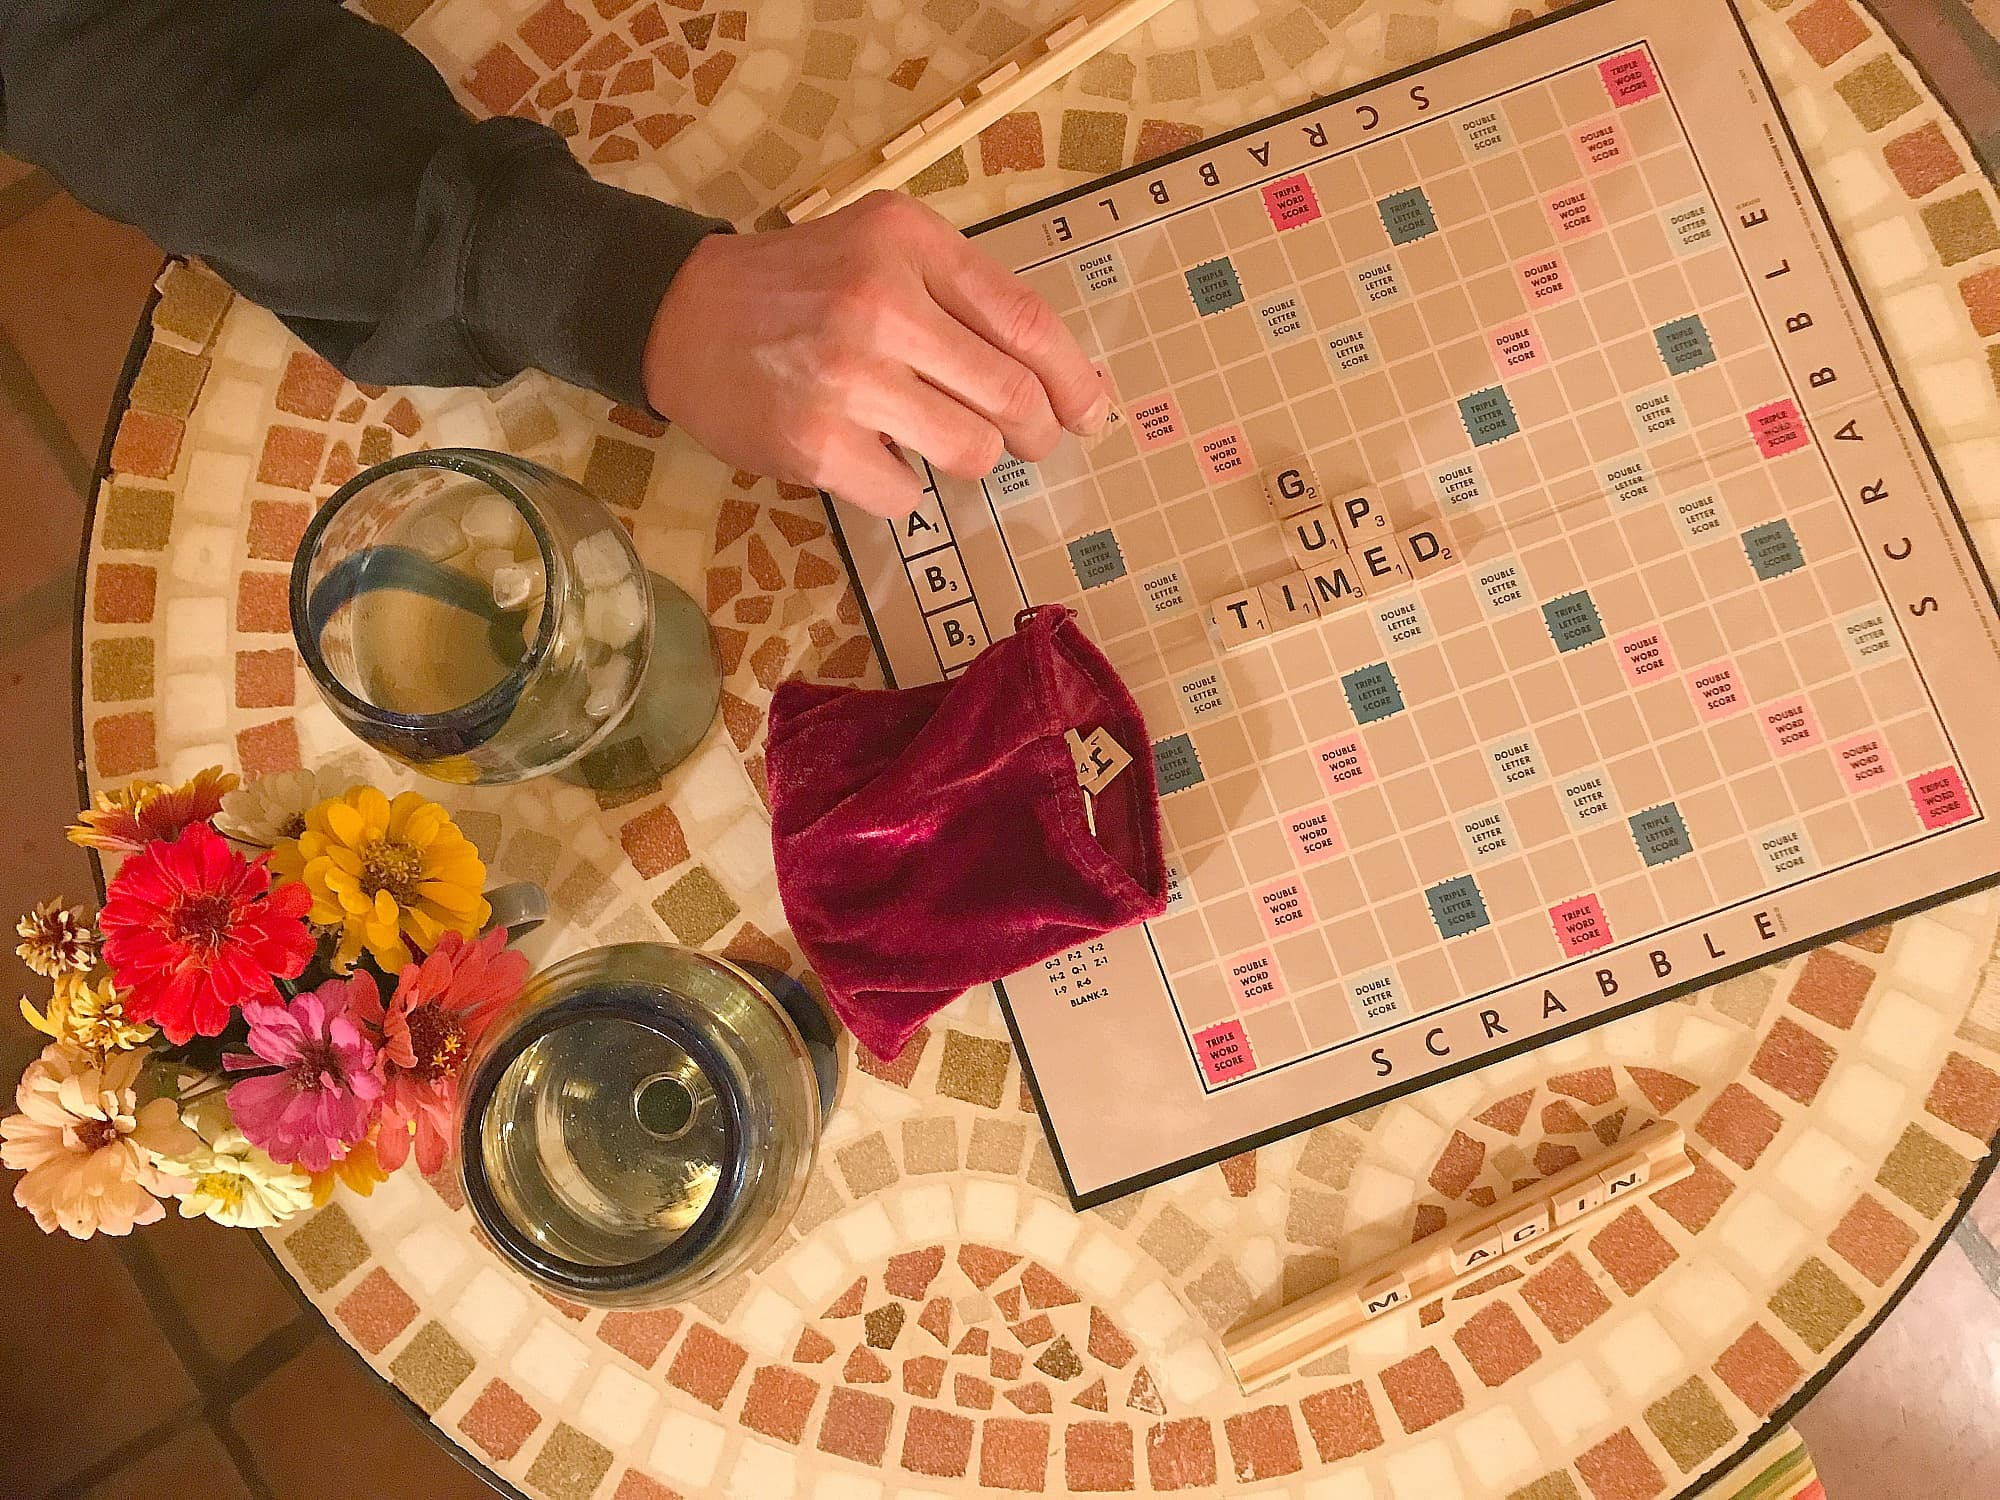 My husband and I brought our Scrabble board from home, but there was a deck of cards in our casita as well at Aravaipa Farms Inn